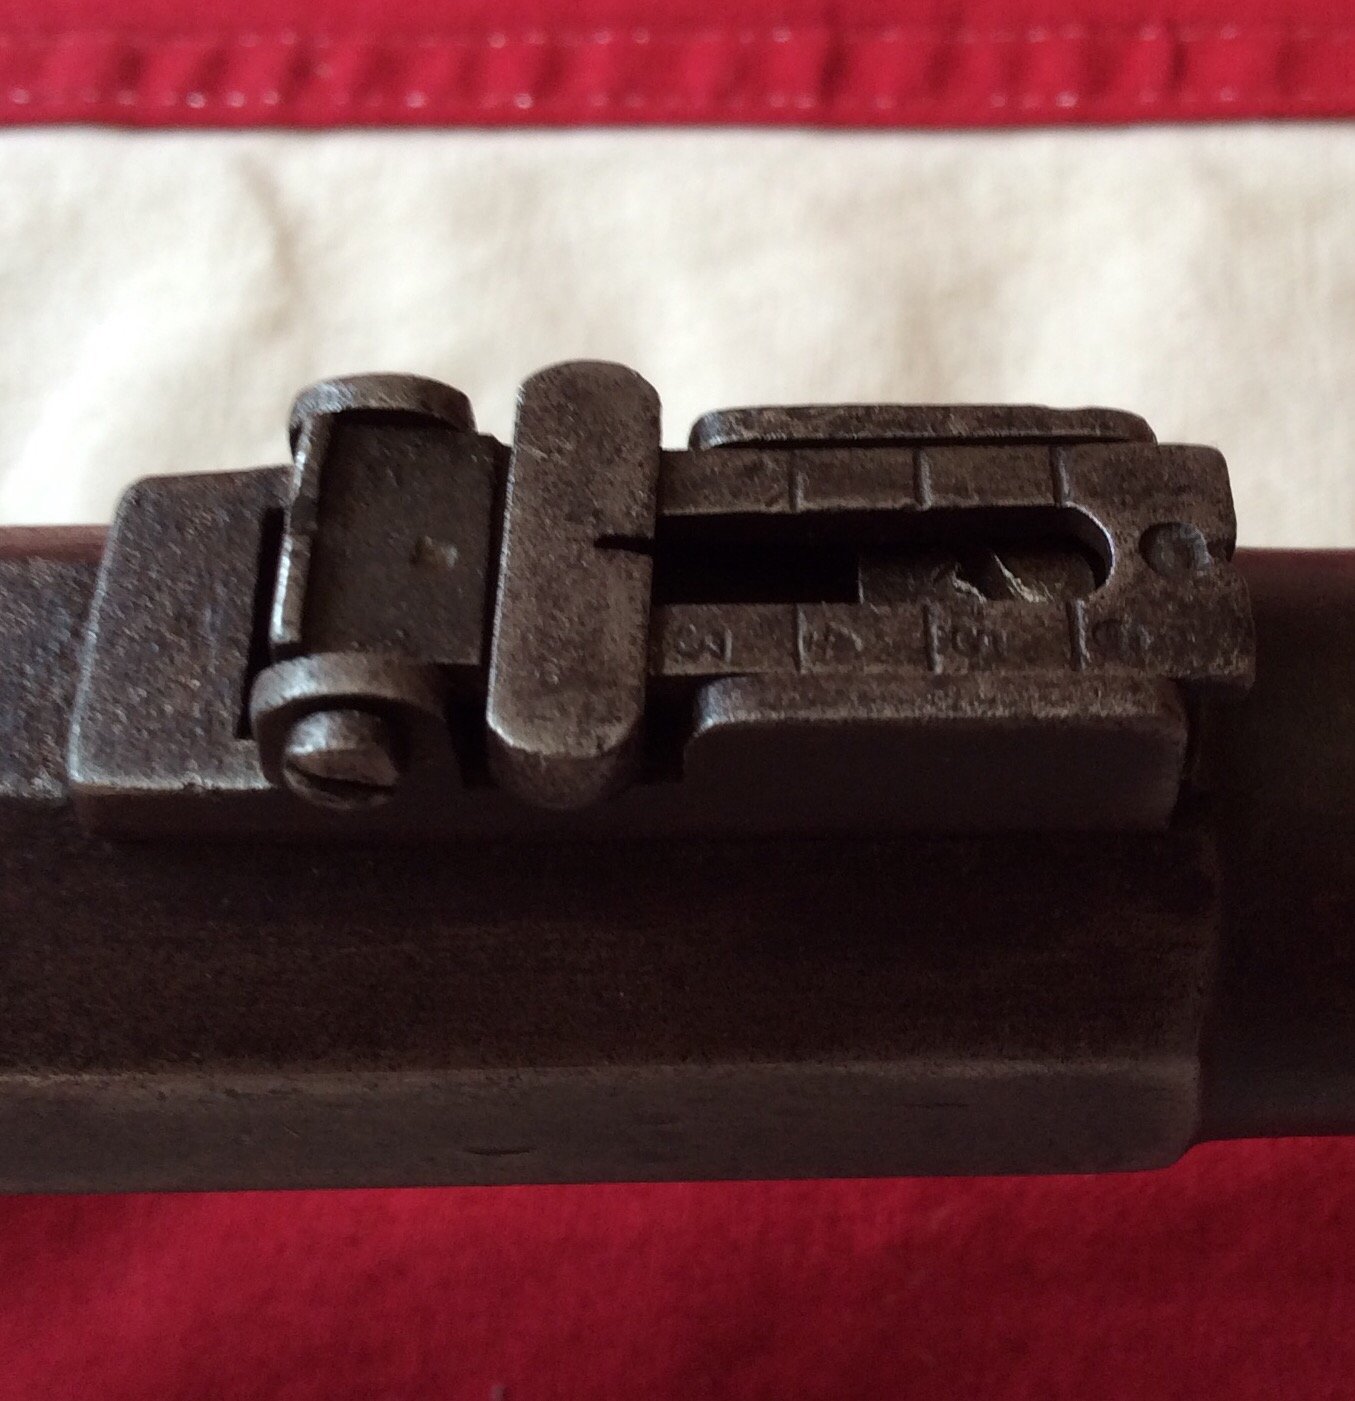 1864 Gywn & Campbell Carbine, Rear Sight